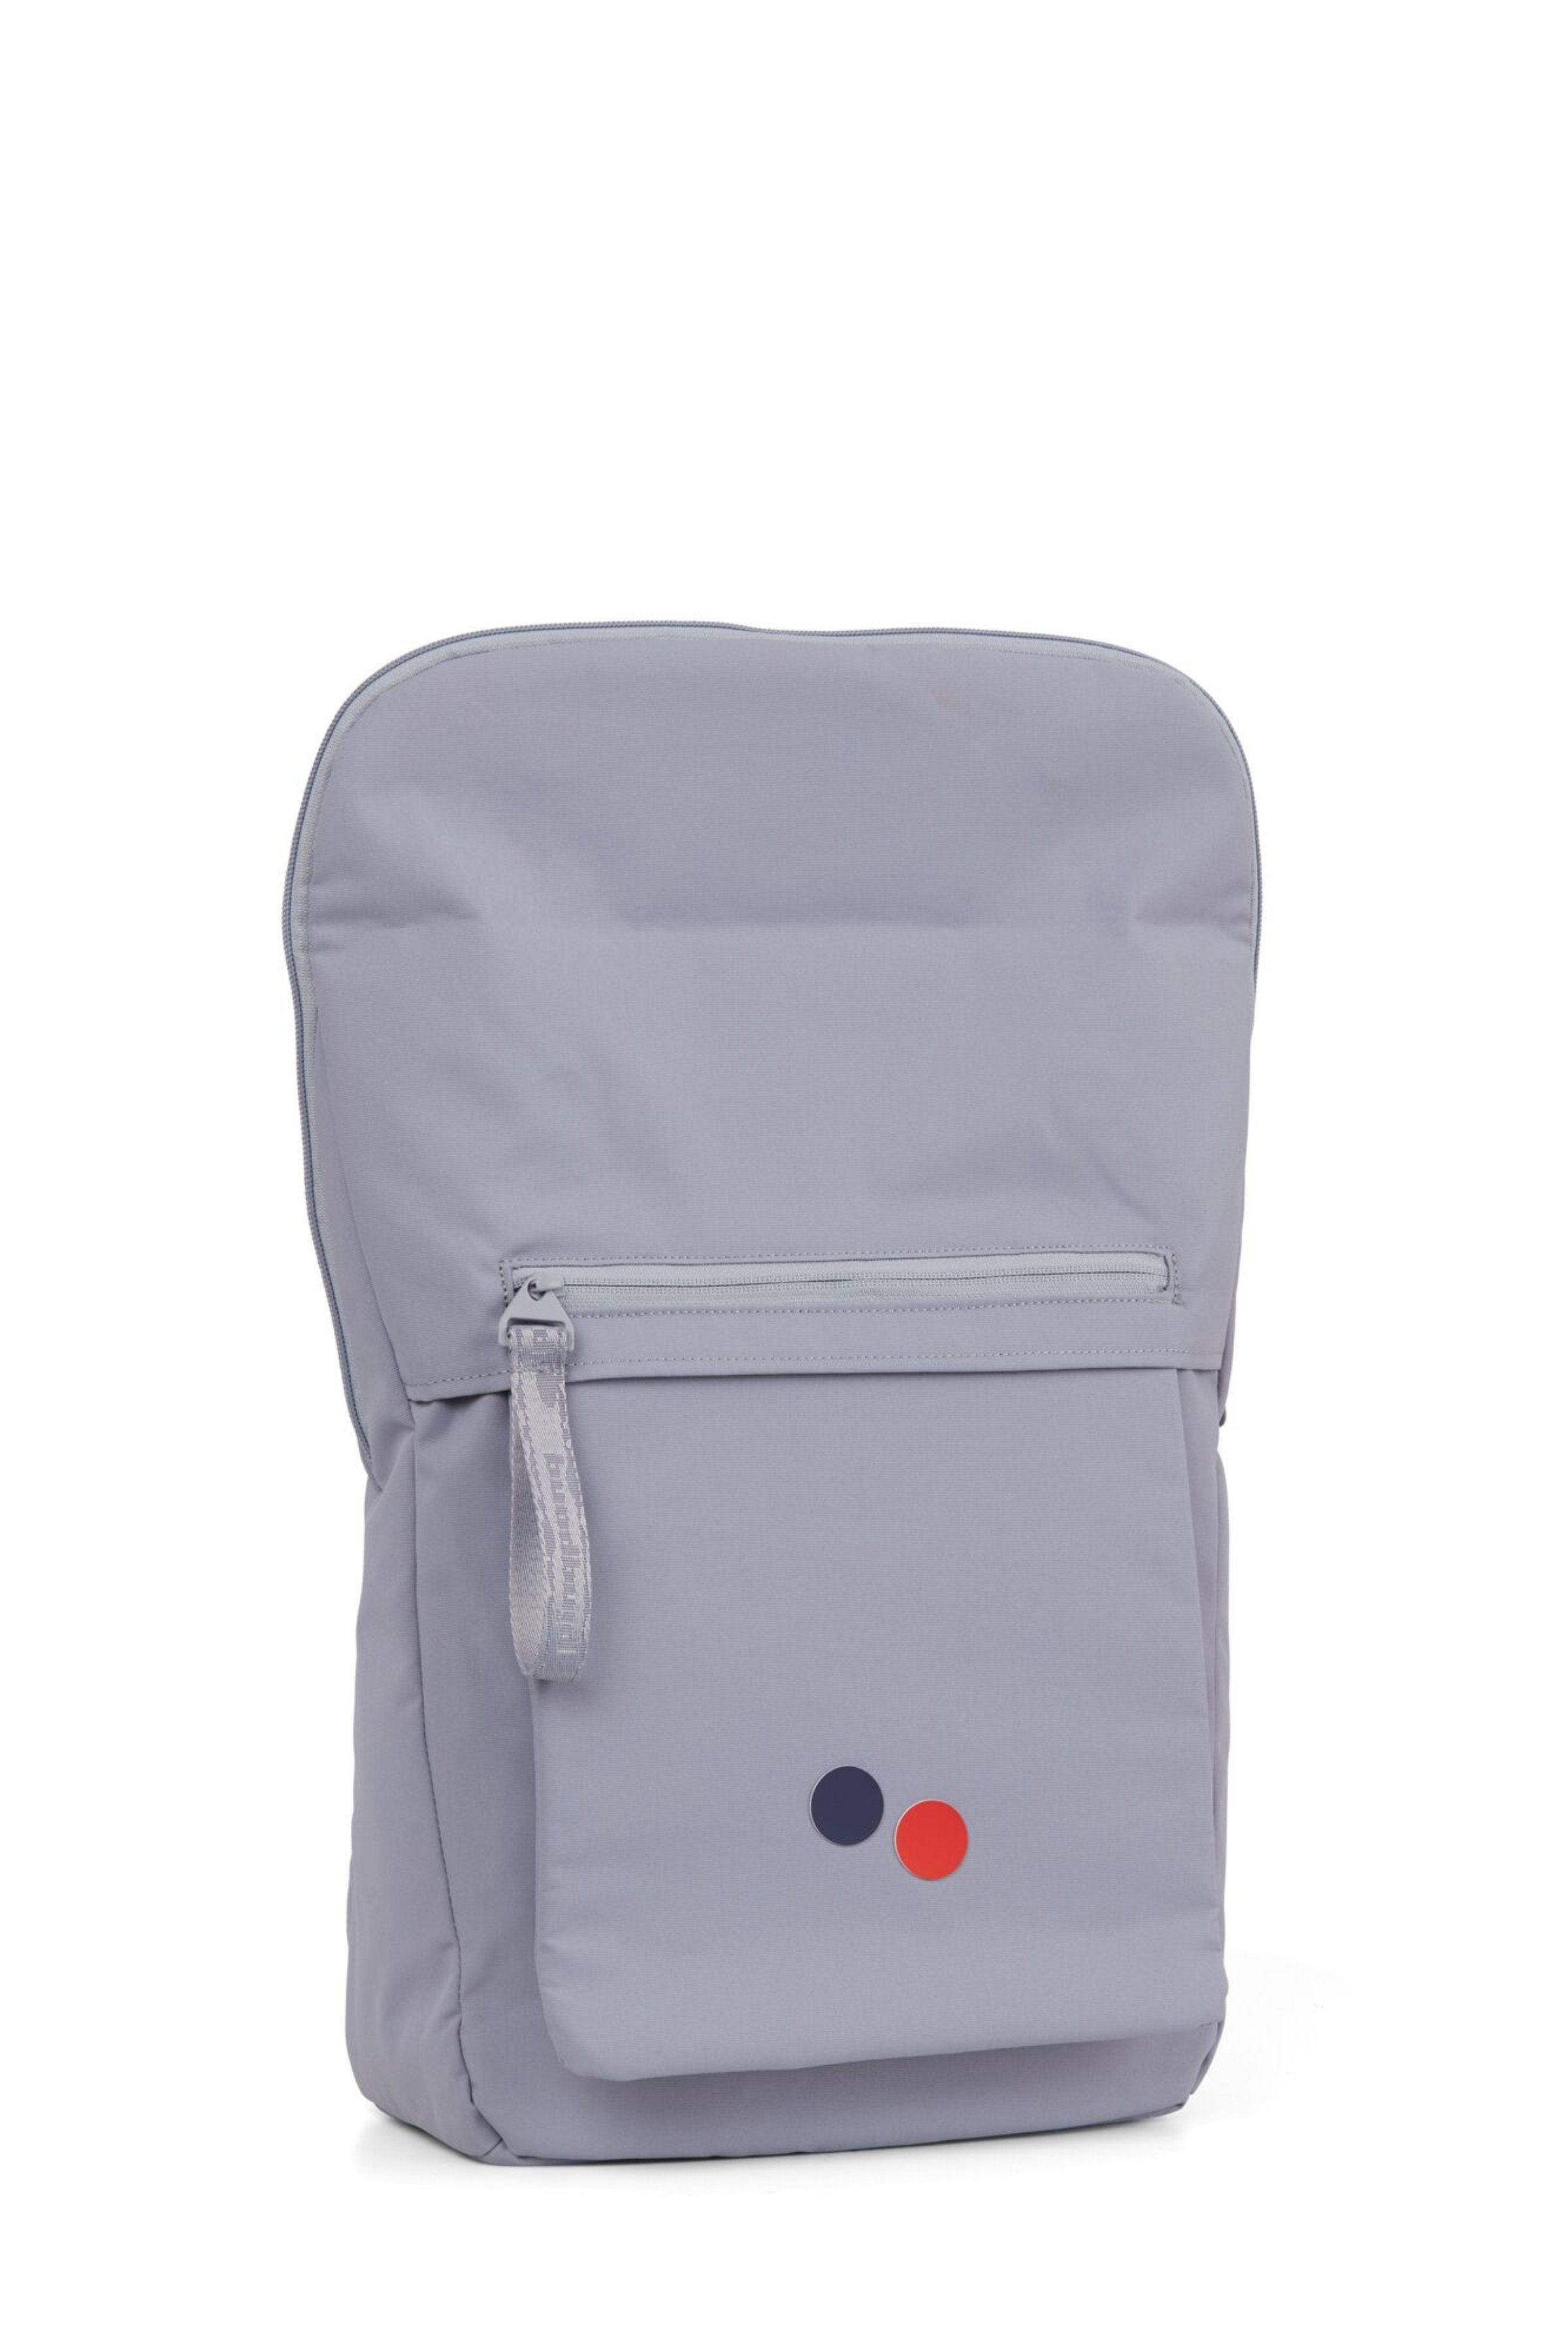 Rucksack Klak Iced Lilac from LOVECO